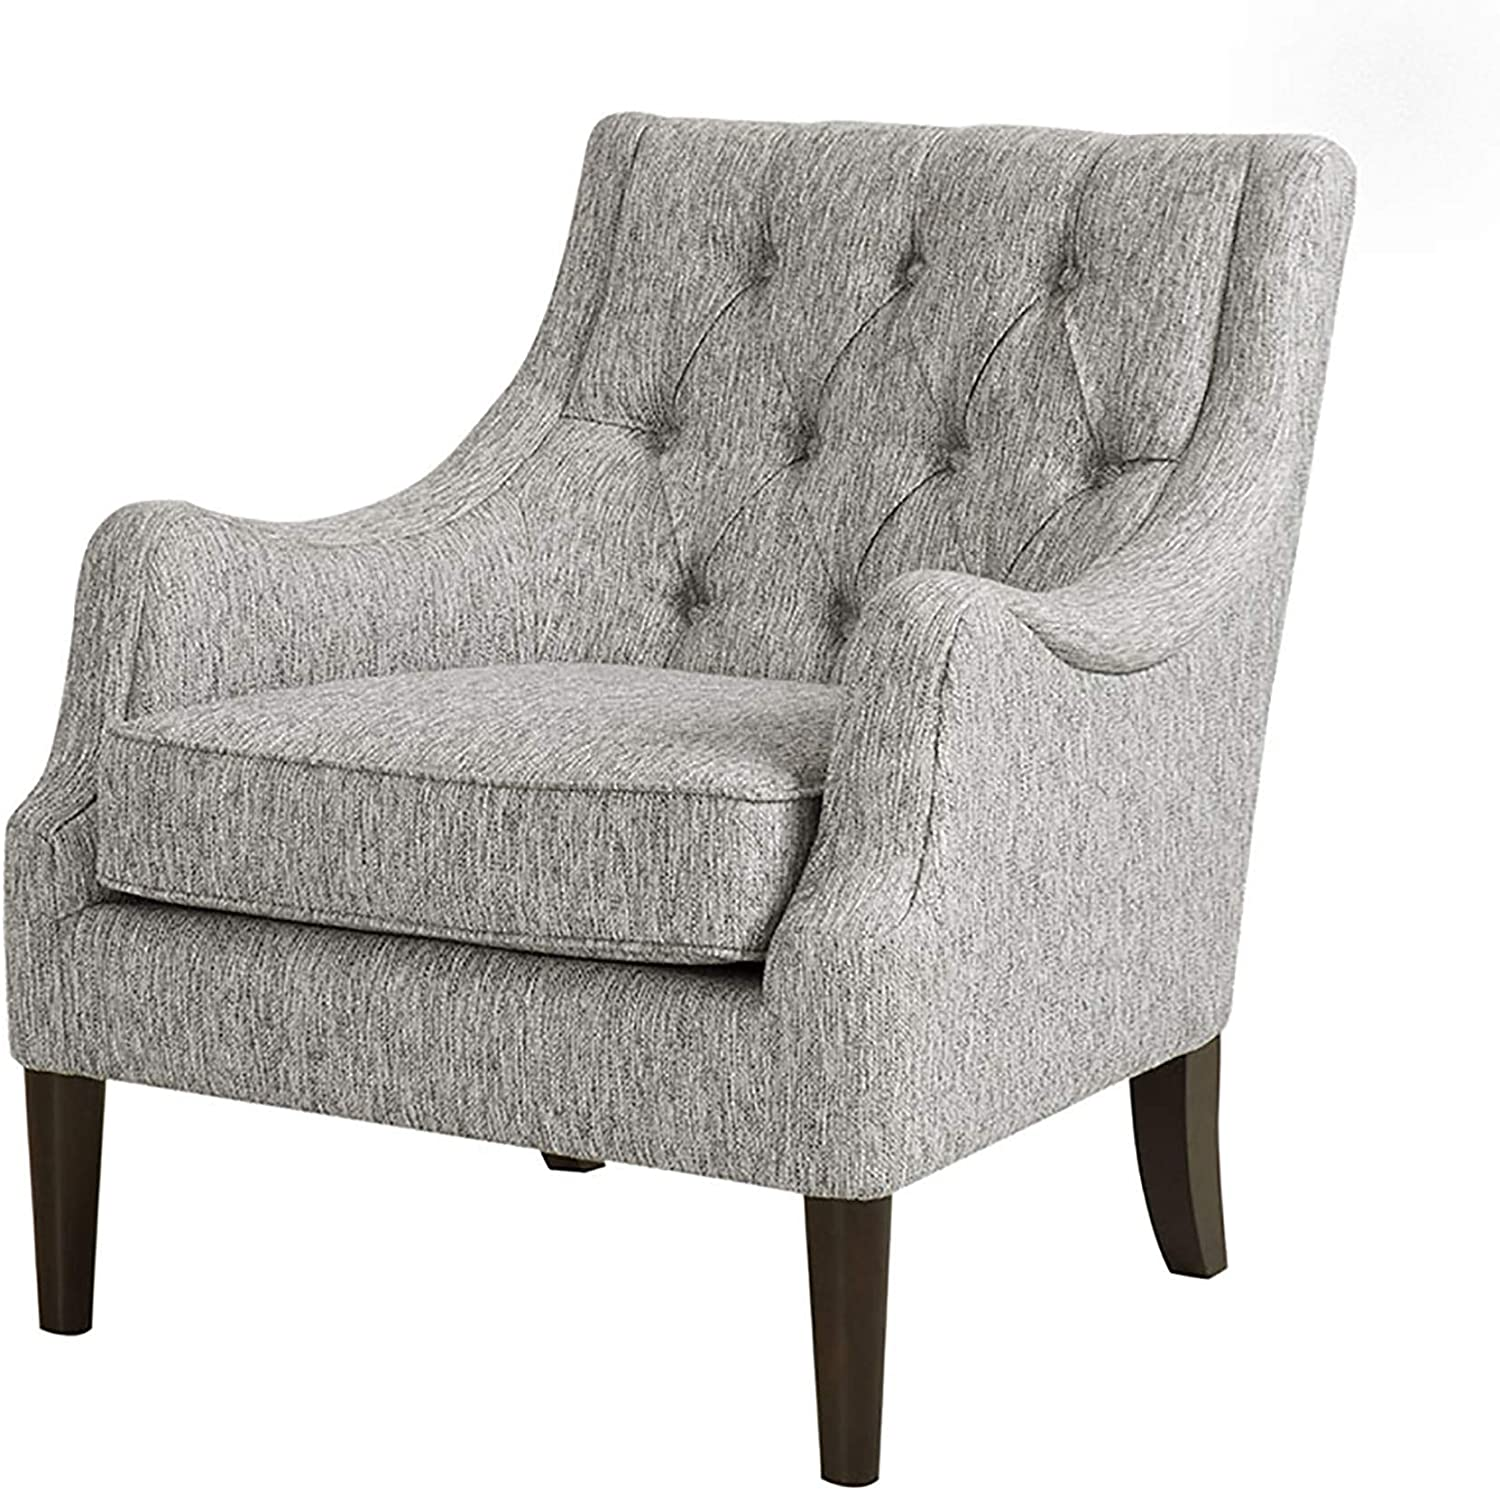 Madison Park Qwen Accent Chairs - Birch, Hardwood, Faux Linen Armchair, Modern Classic Style, Diamond Tufted Living Room Sofa Furniture, Bedside Lounger, Grey